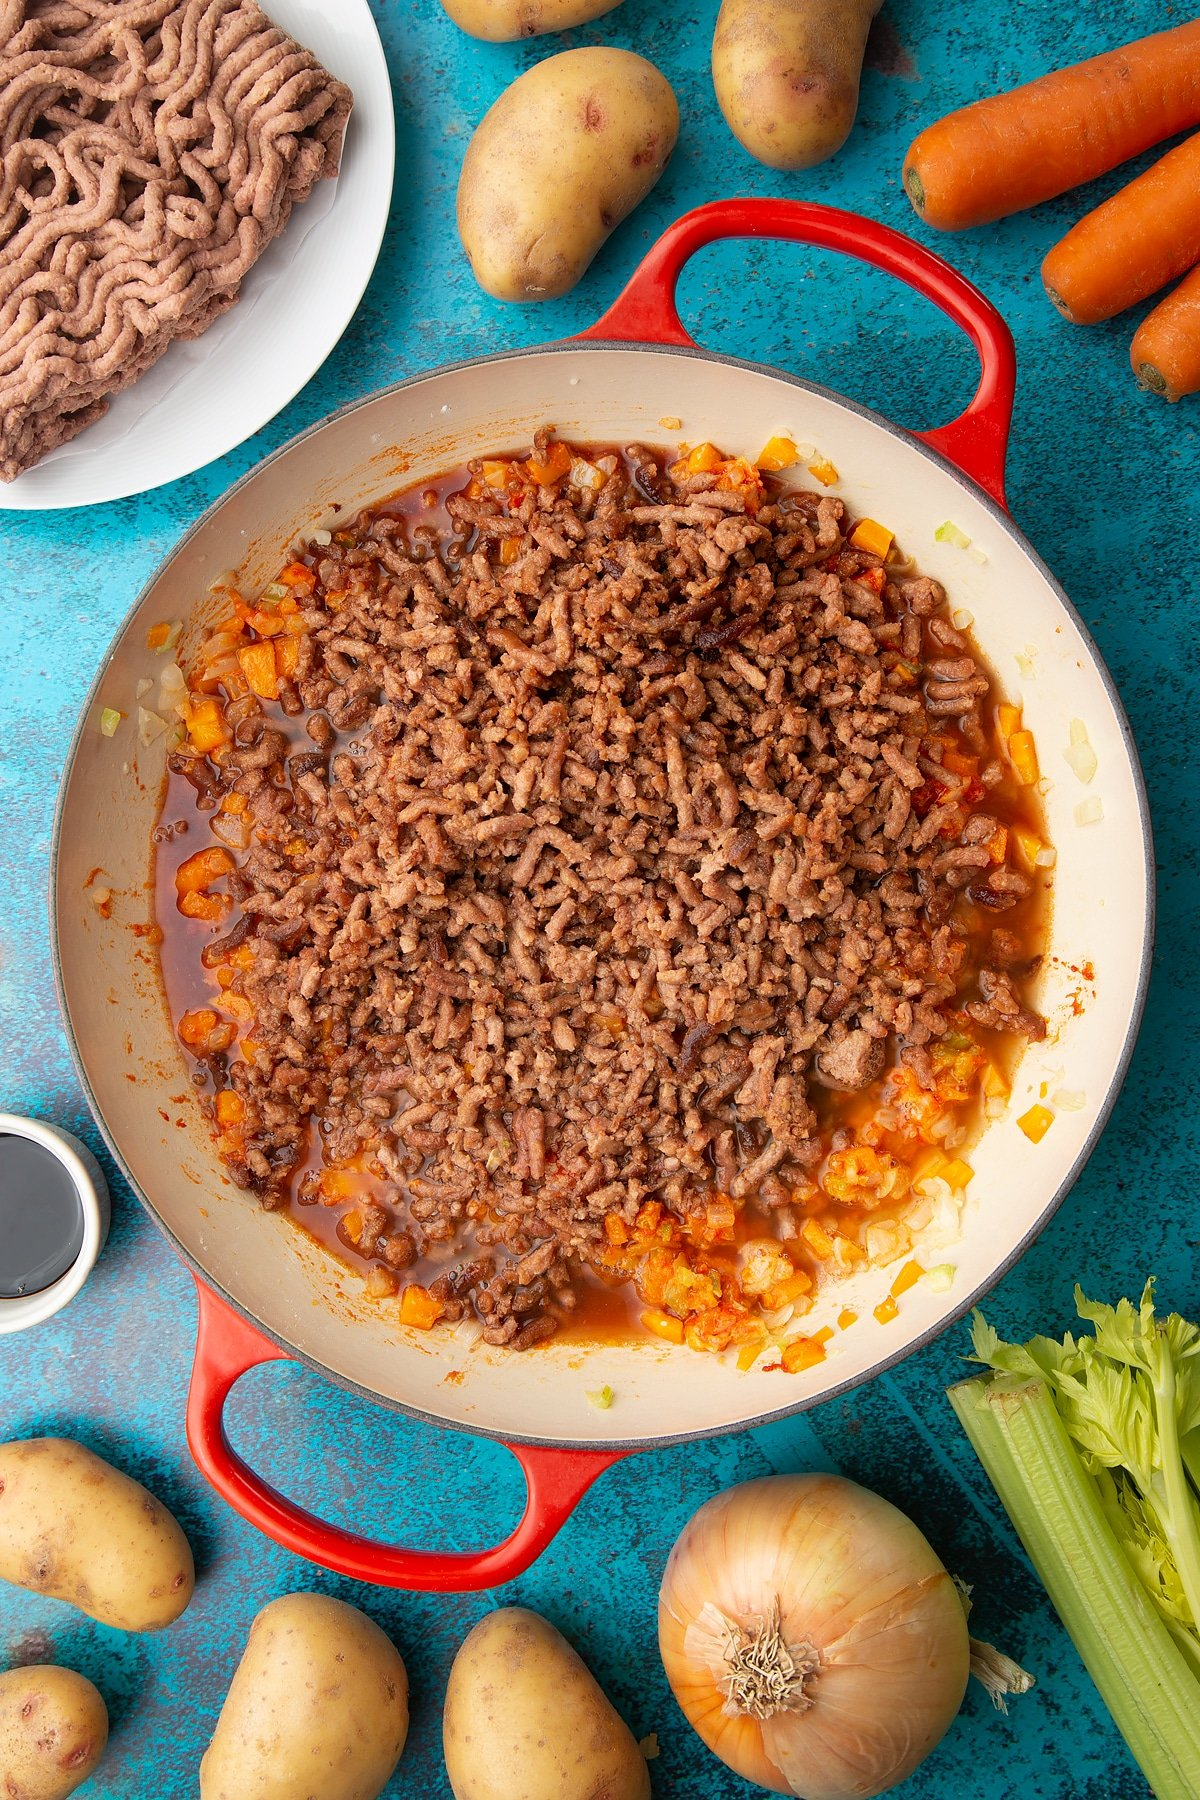 Fried onions, celery, carrots and garlic, flour, tomato puree, meat free mince, sage, wine and stock in a large pan. Ingredients to make vegan cottage pie surround the pan.